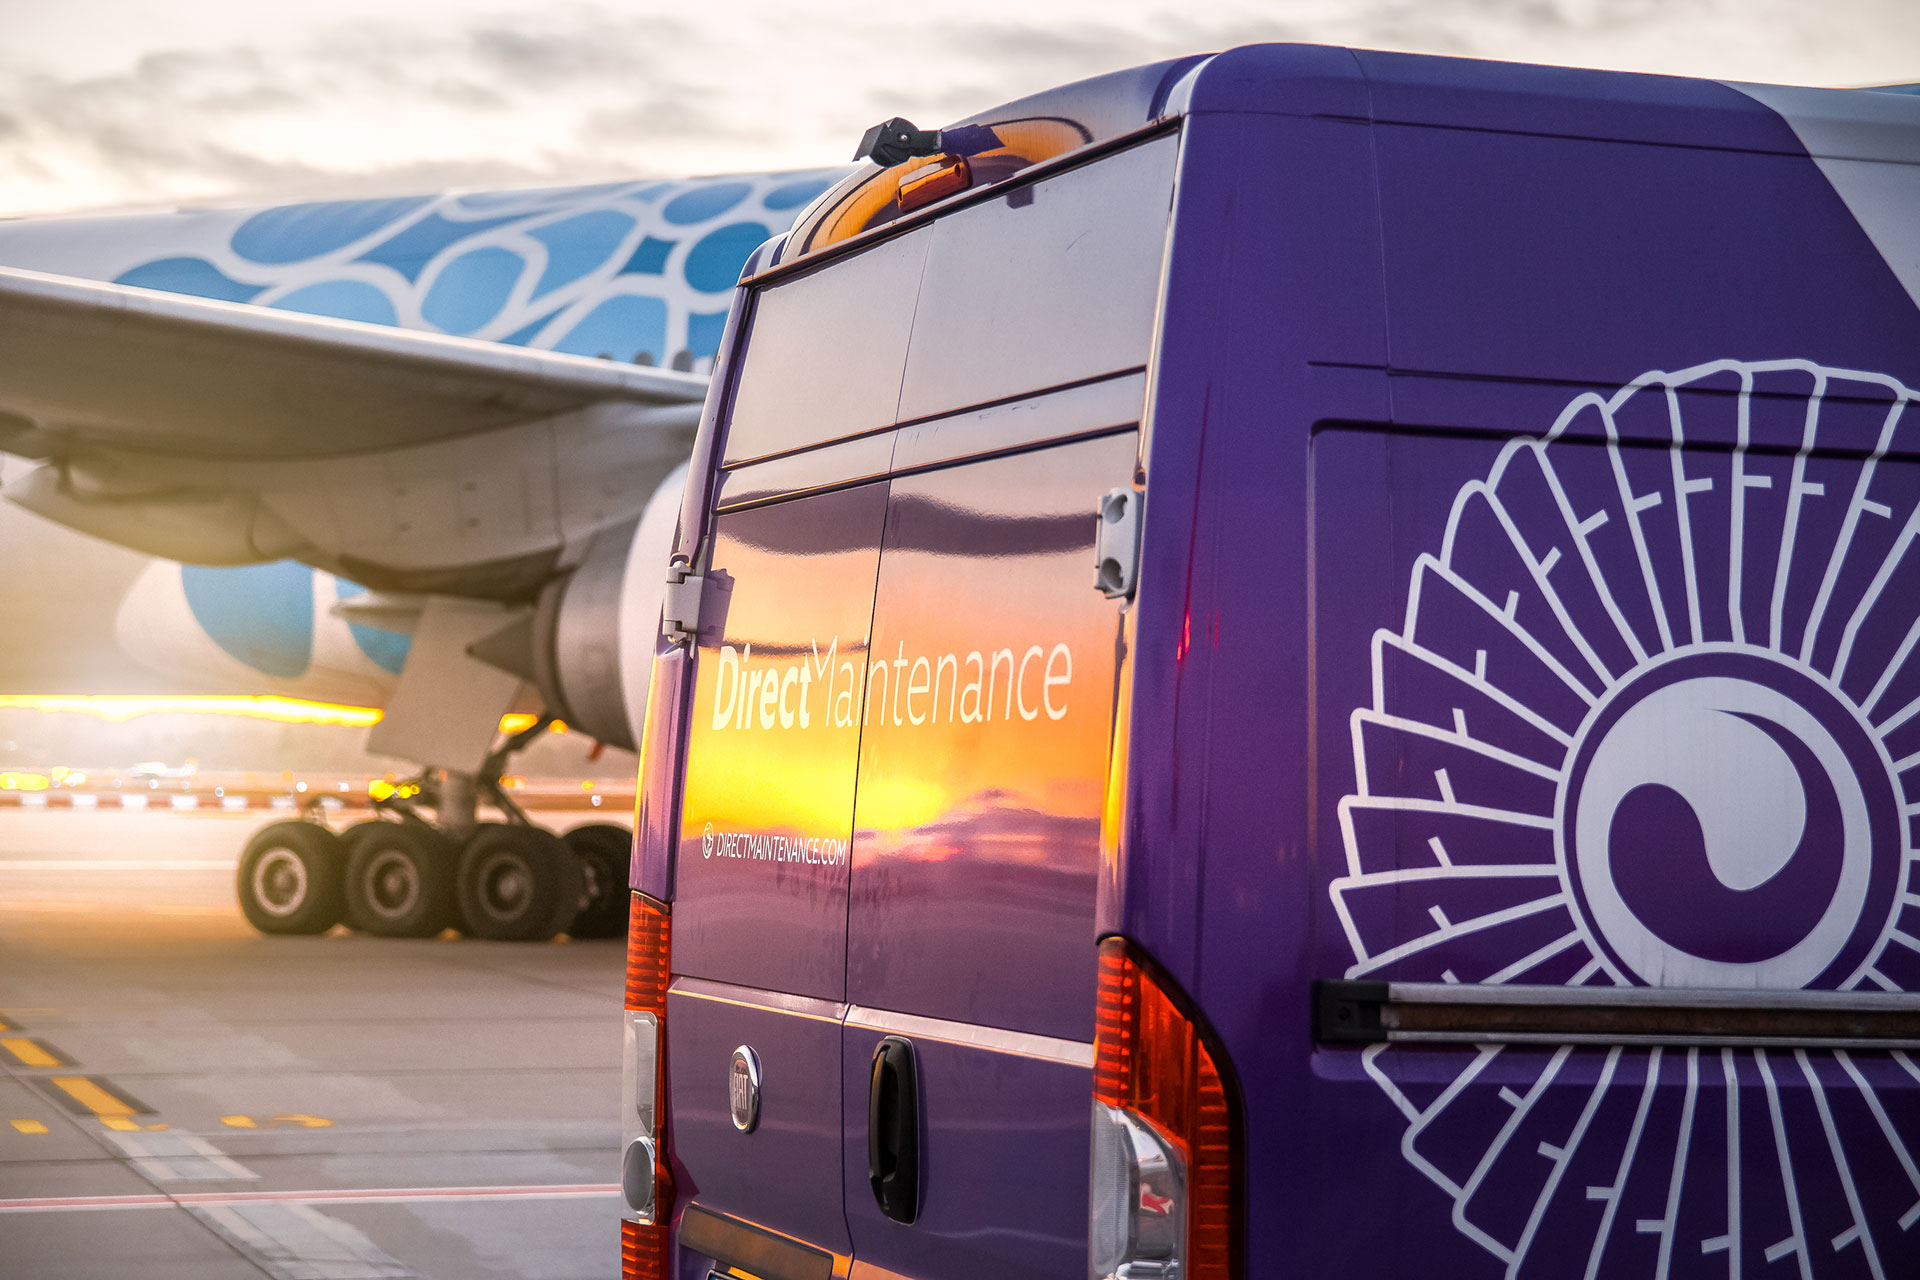 One Line Maintenance: Direct Maintenance and Magnetic MRO integrate their capabilities